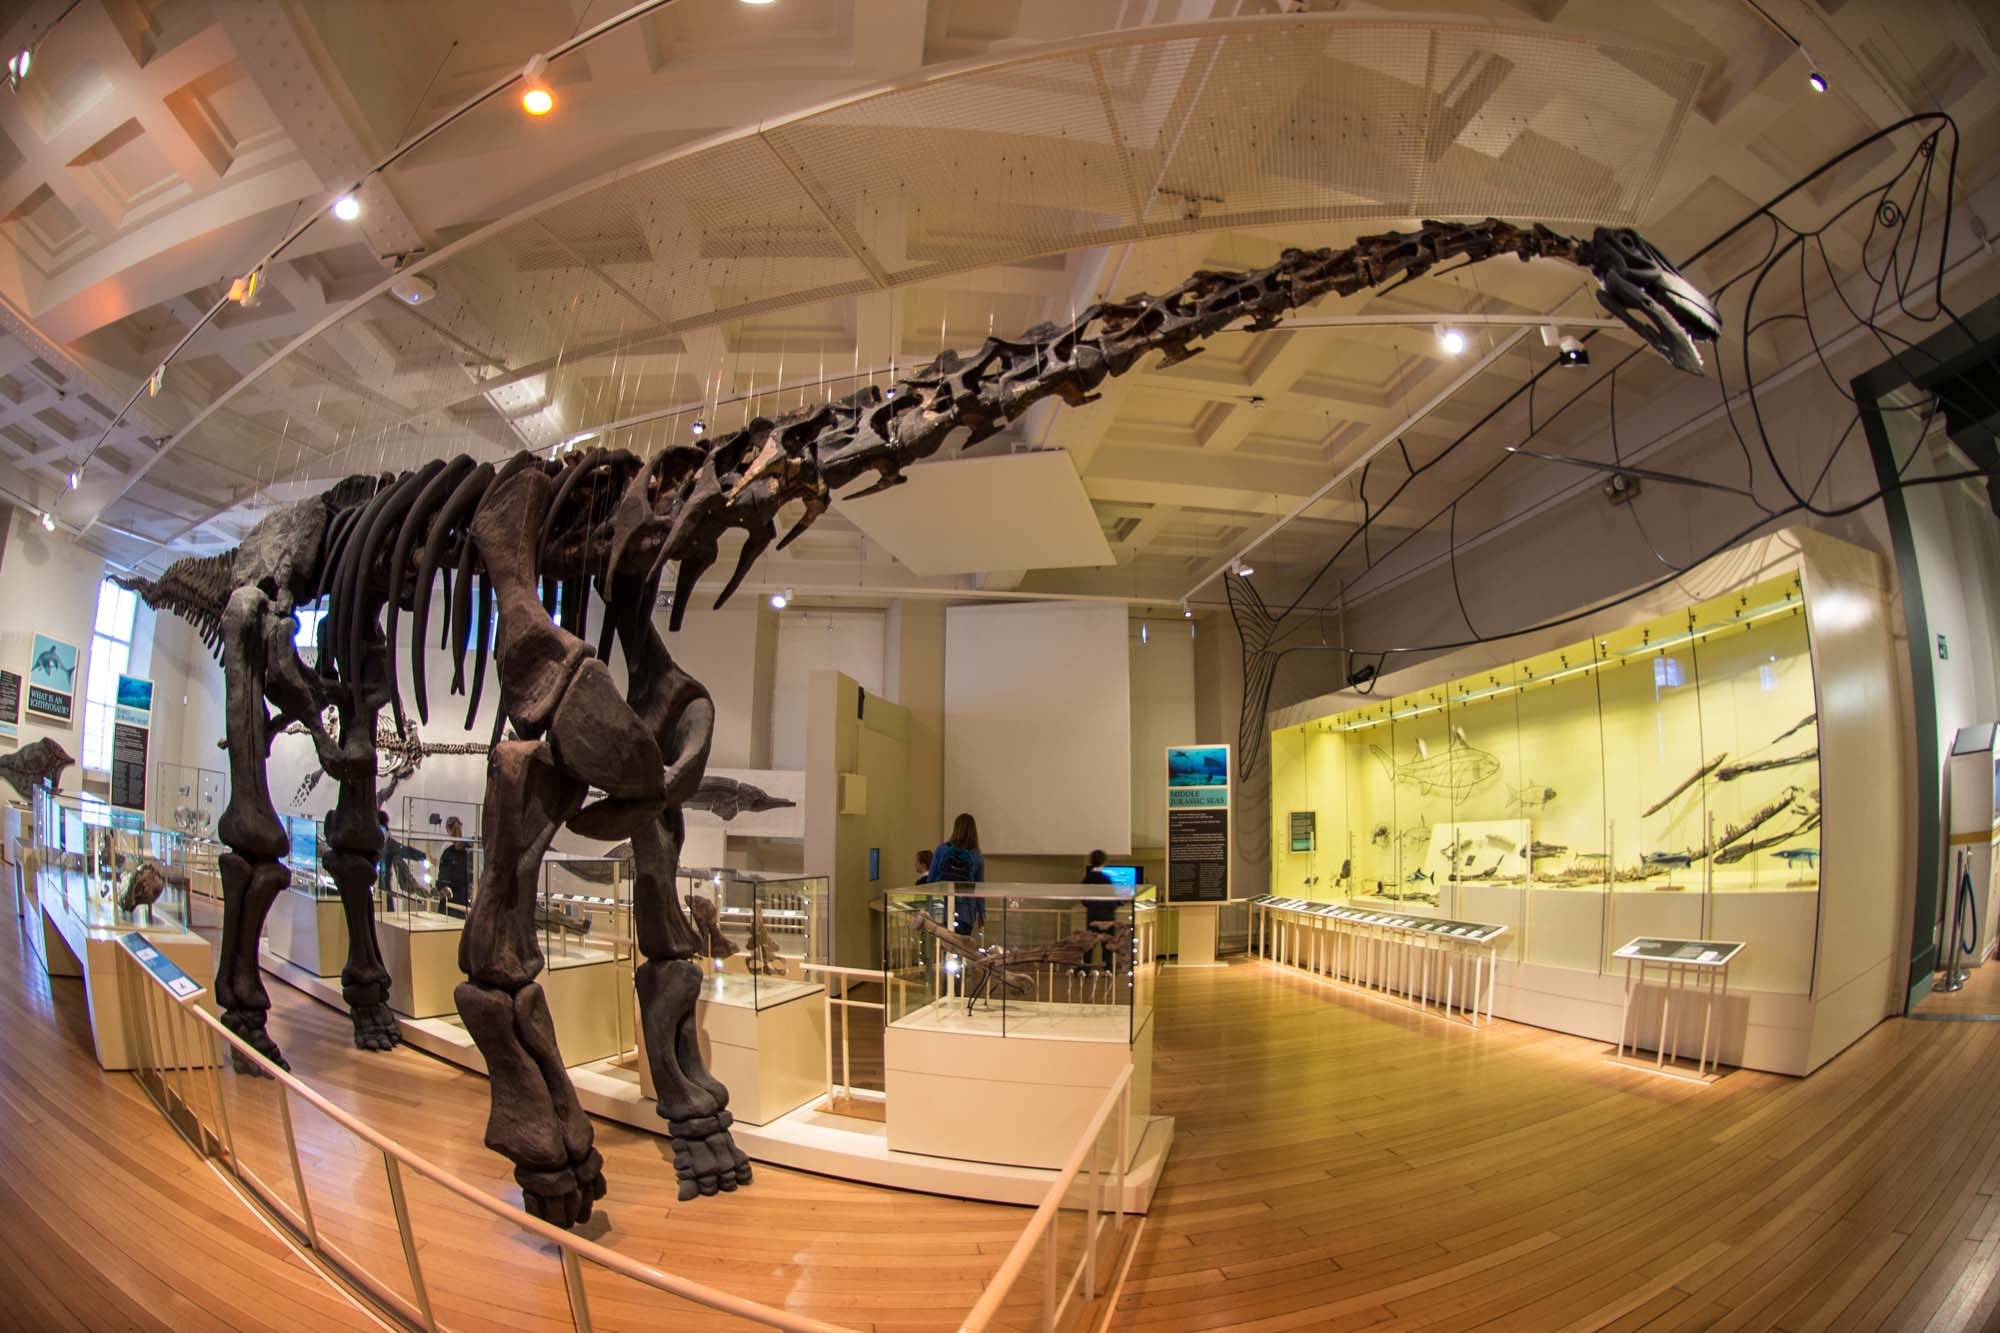 The Dinosaur Gallery as it looks today -